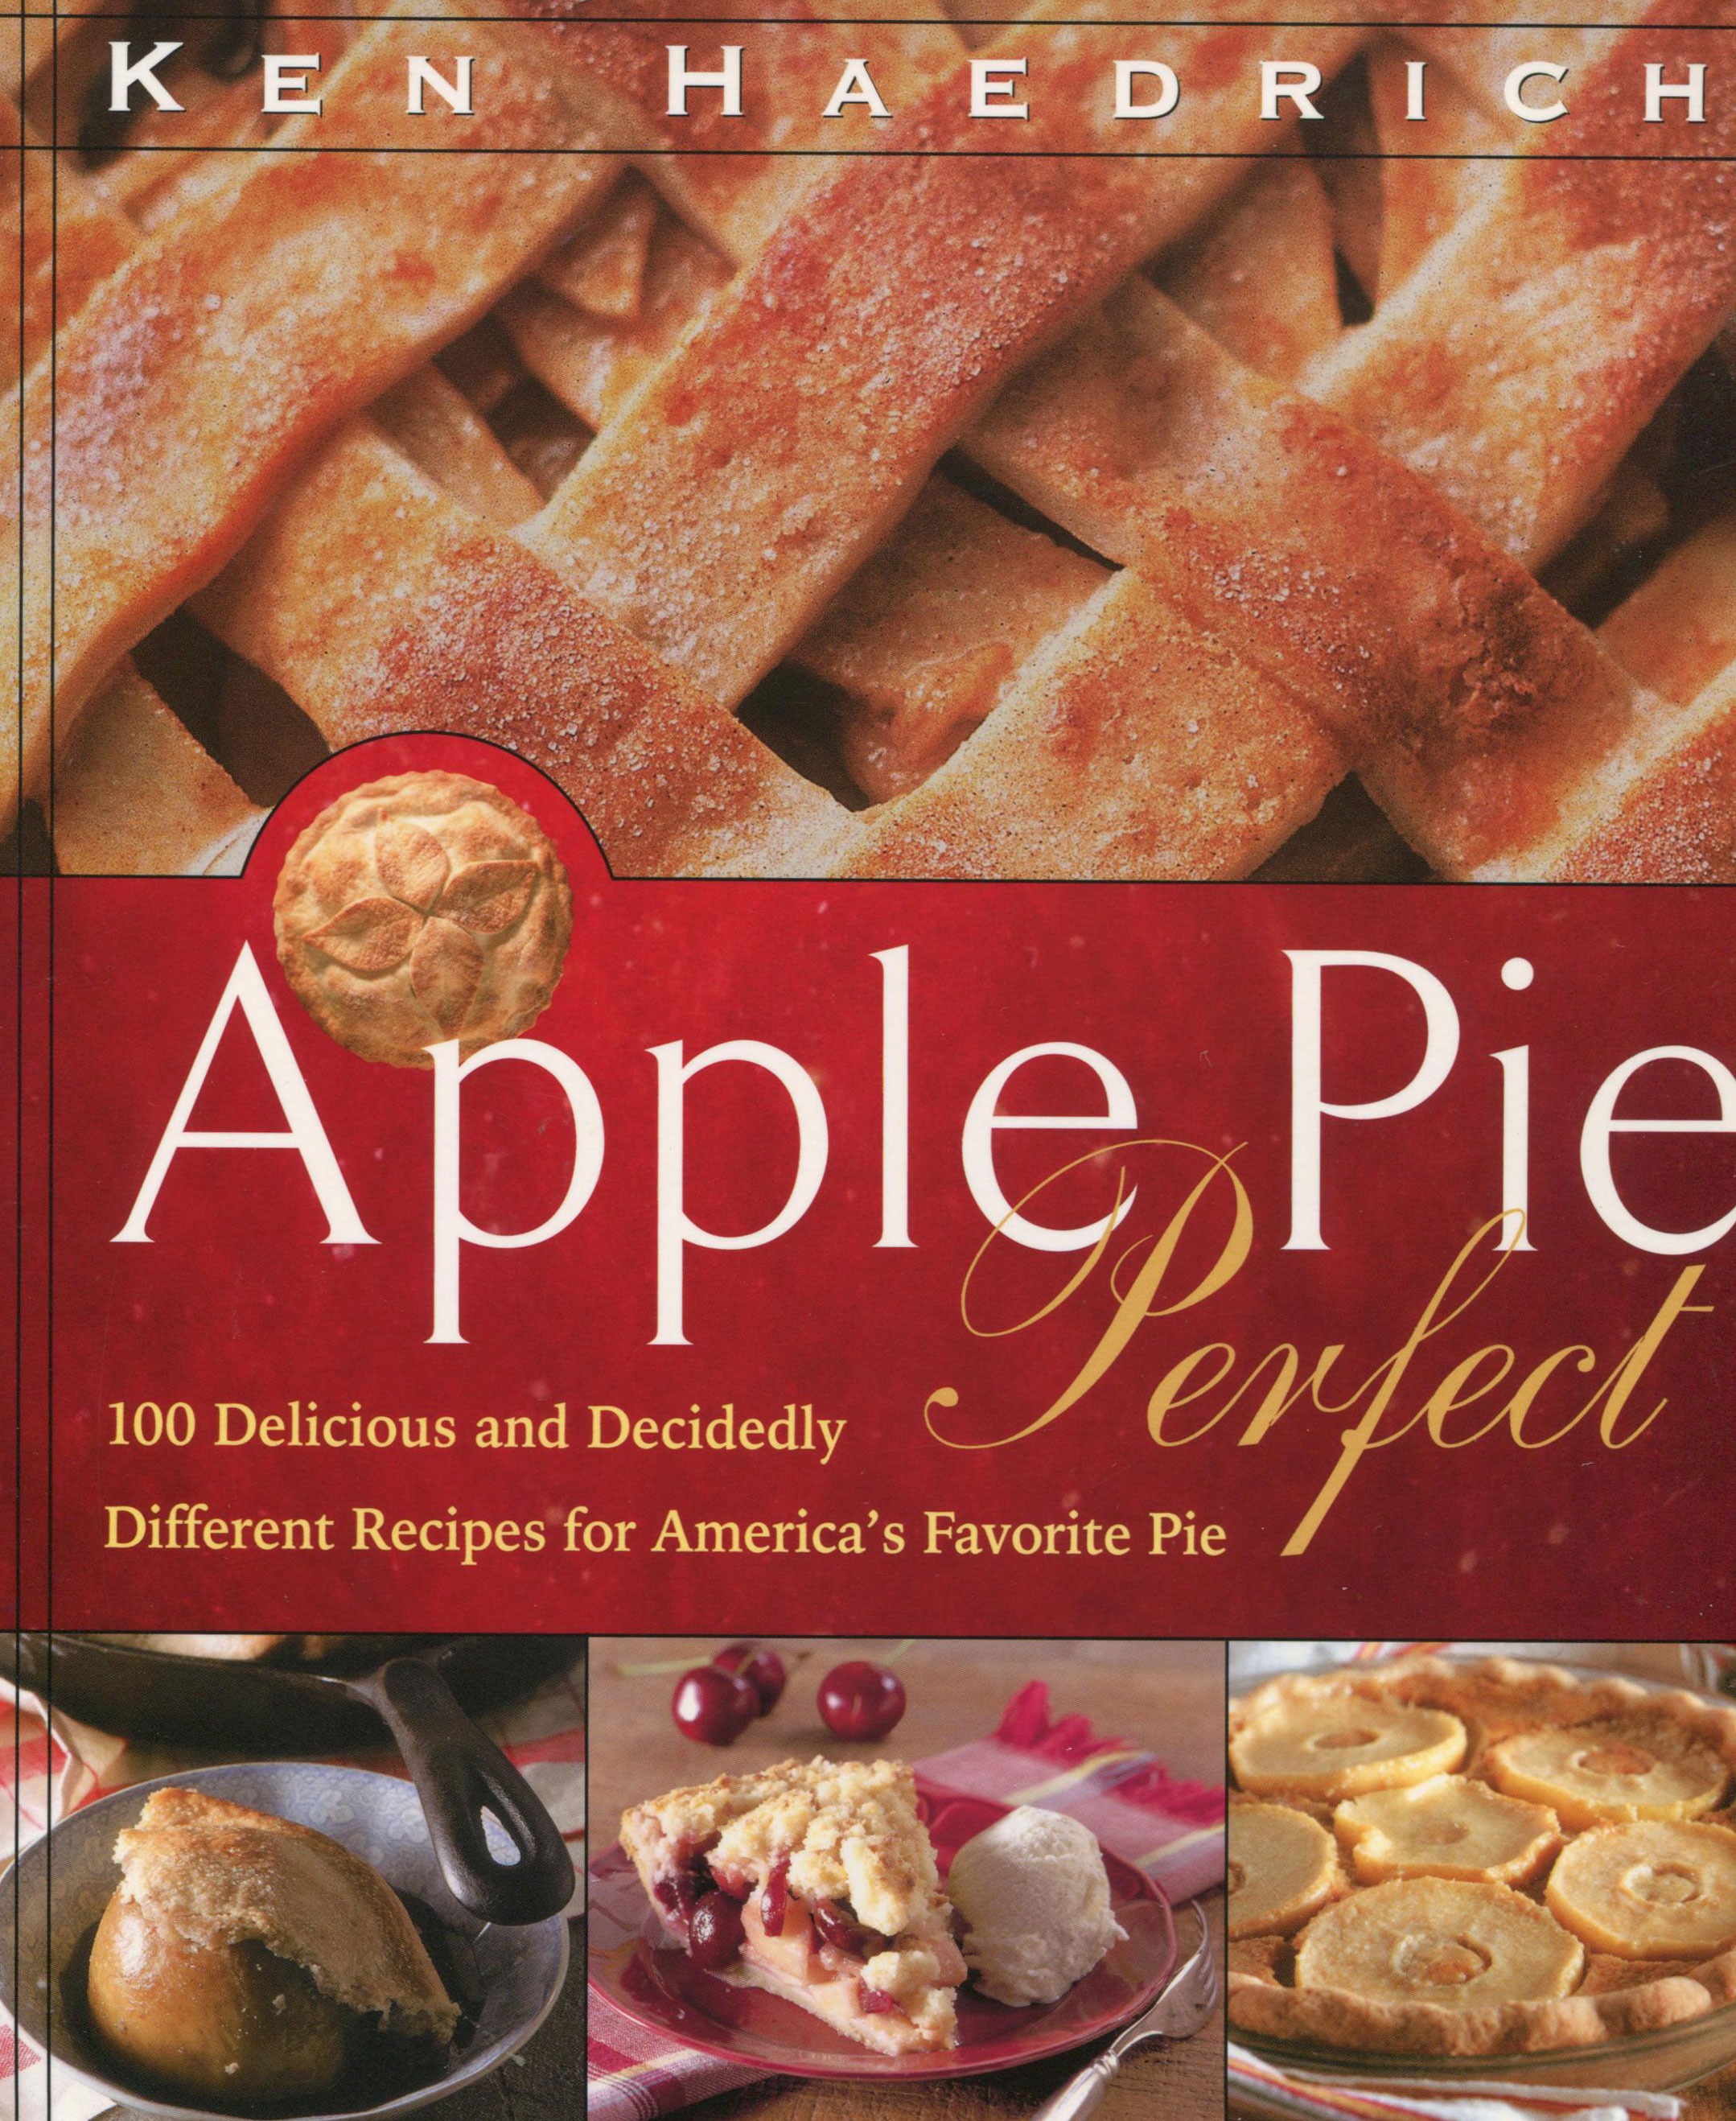 TBT Cookbook Review: Apple Pie Perfect